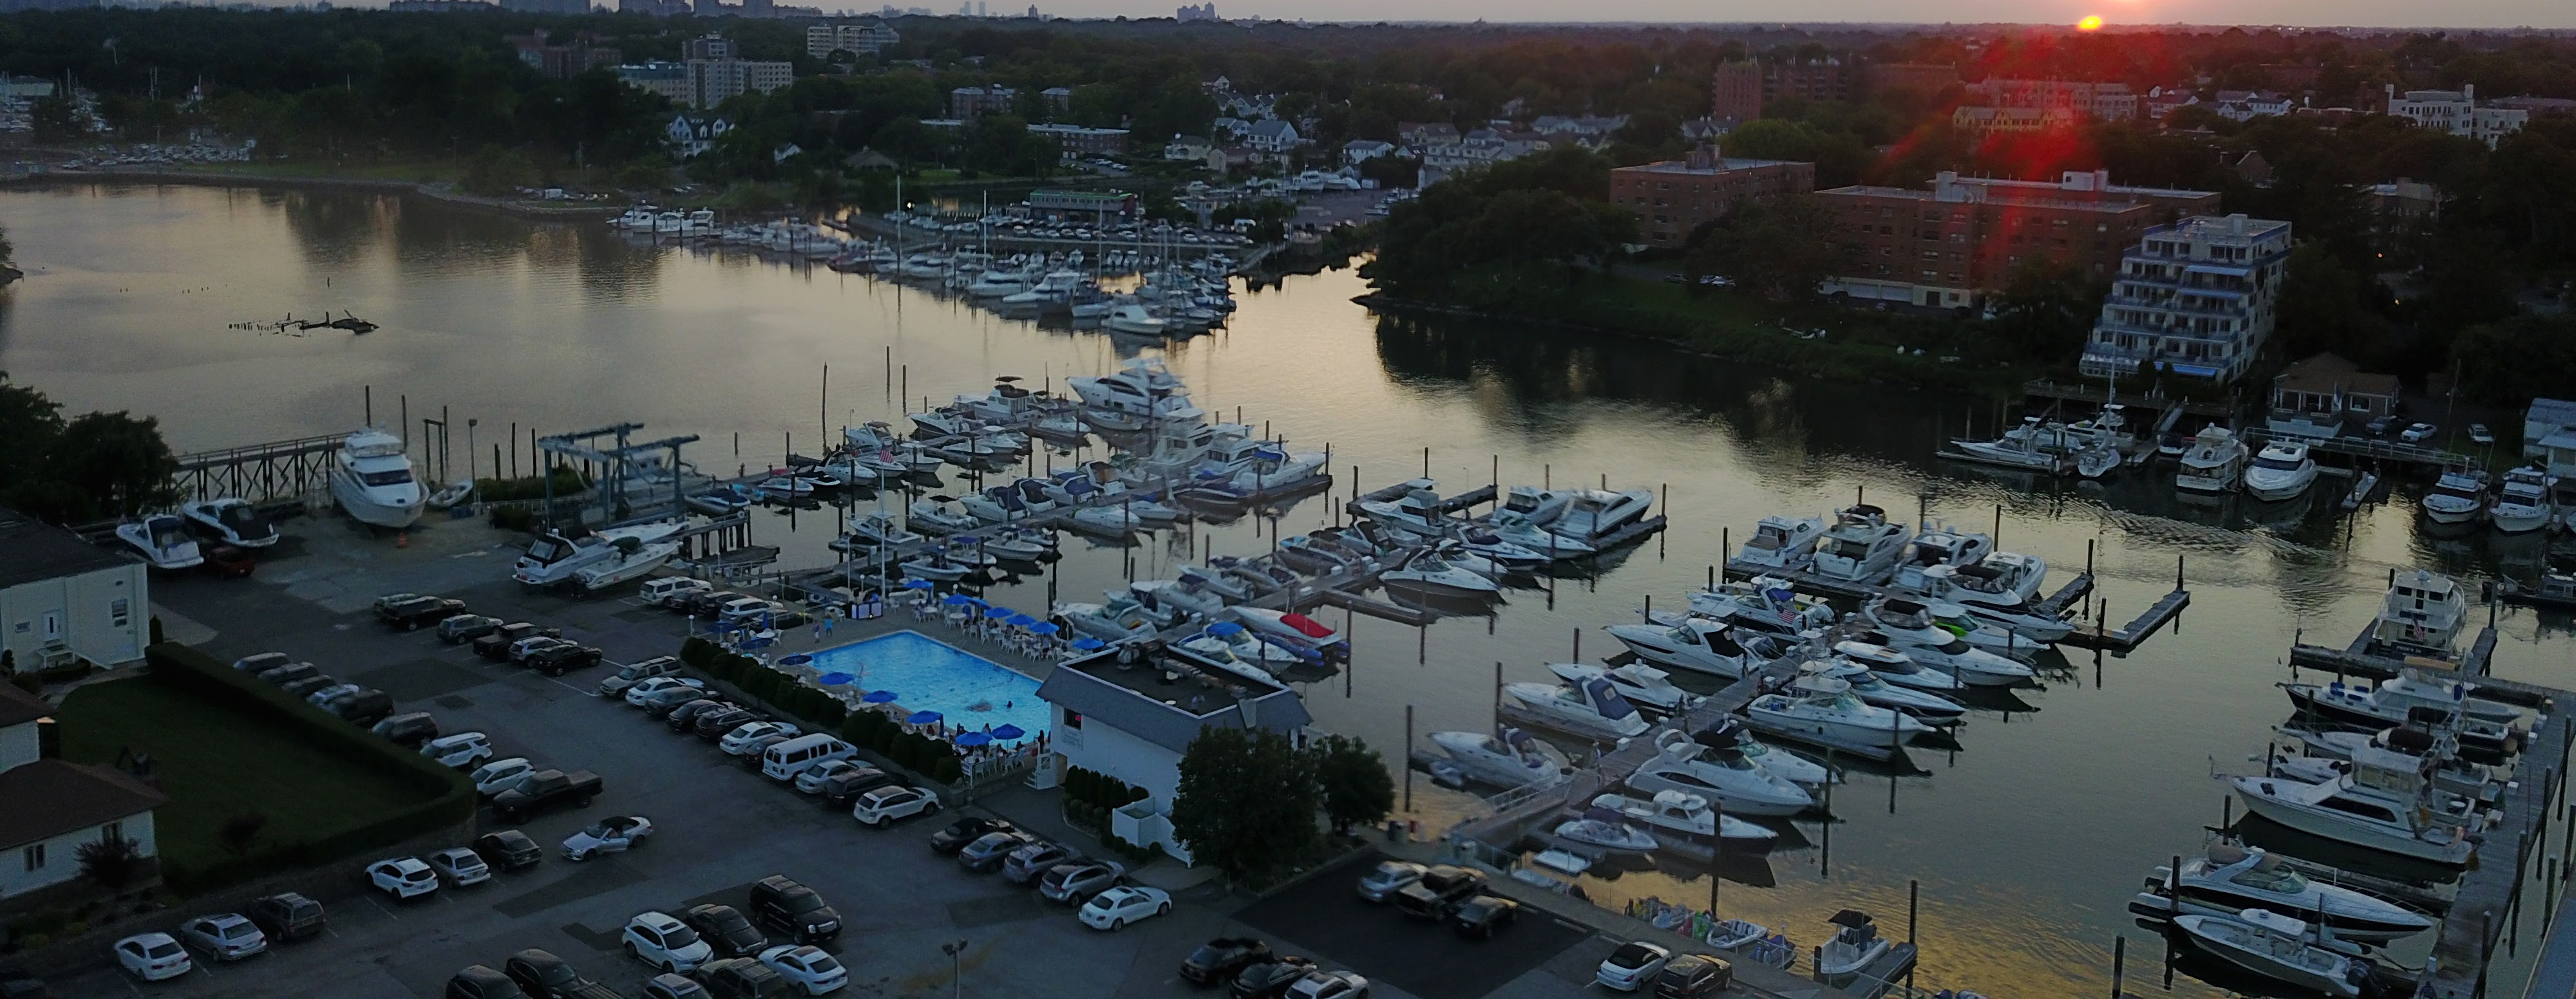 Imperial Yacht Club New York Marina